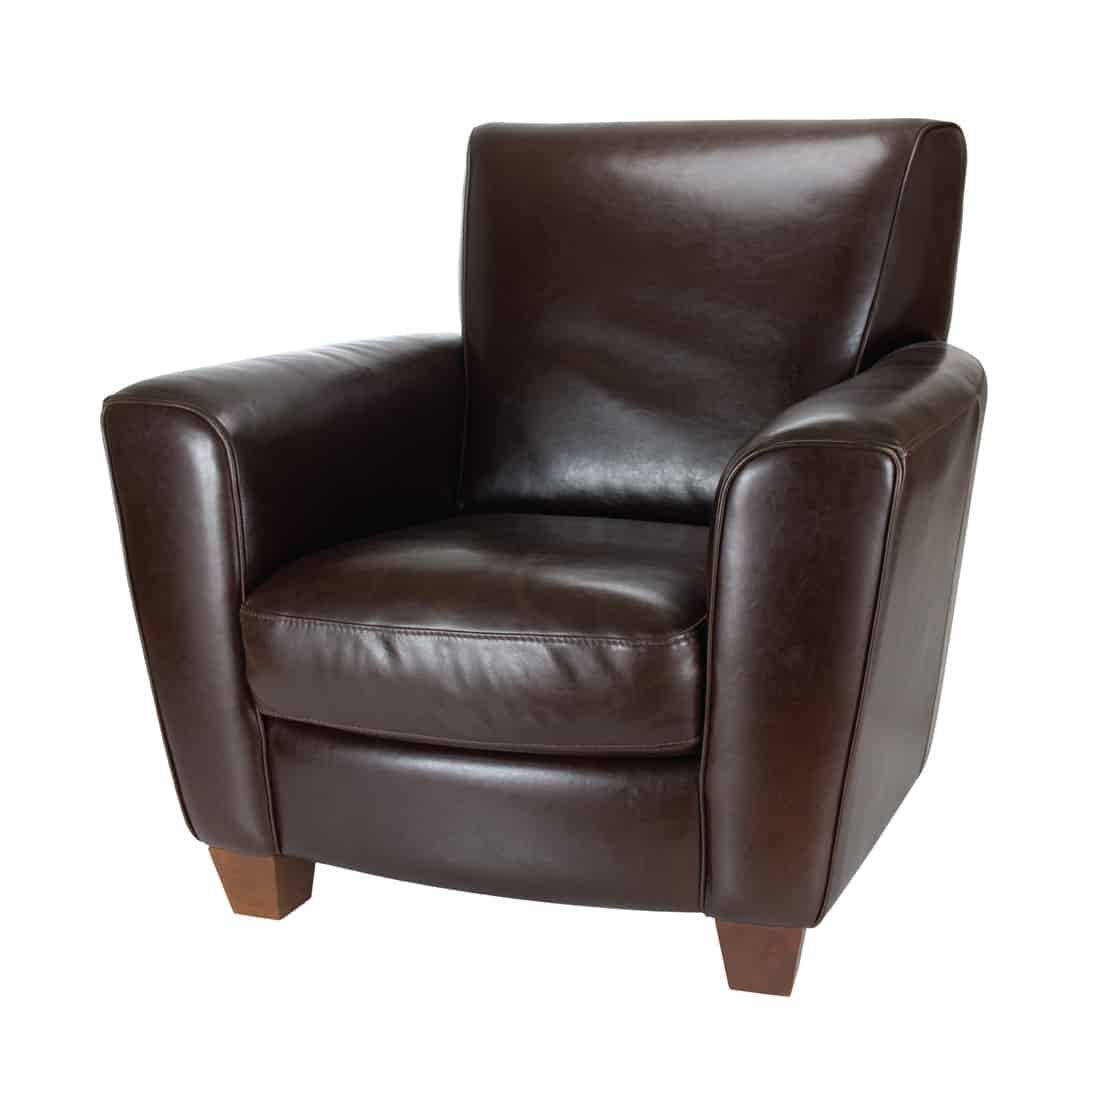 Dark brown leather chair, Contemporary Dark Brown Leather Chair